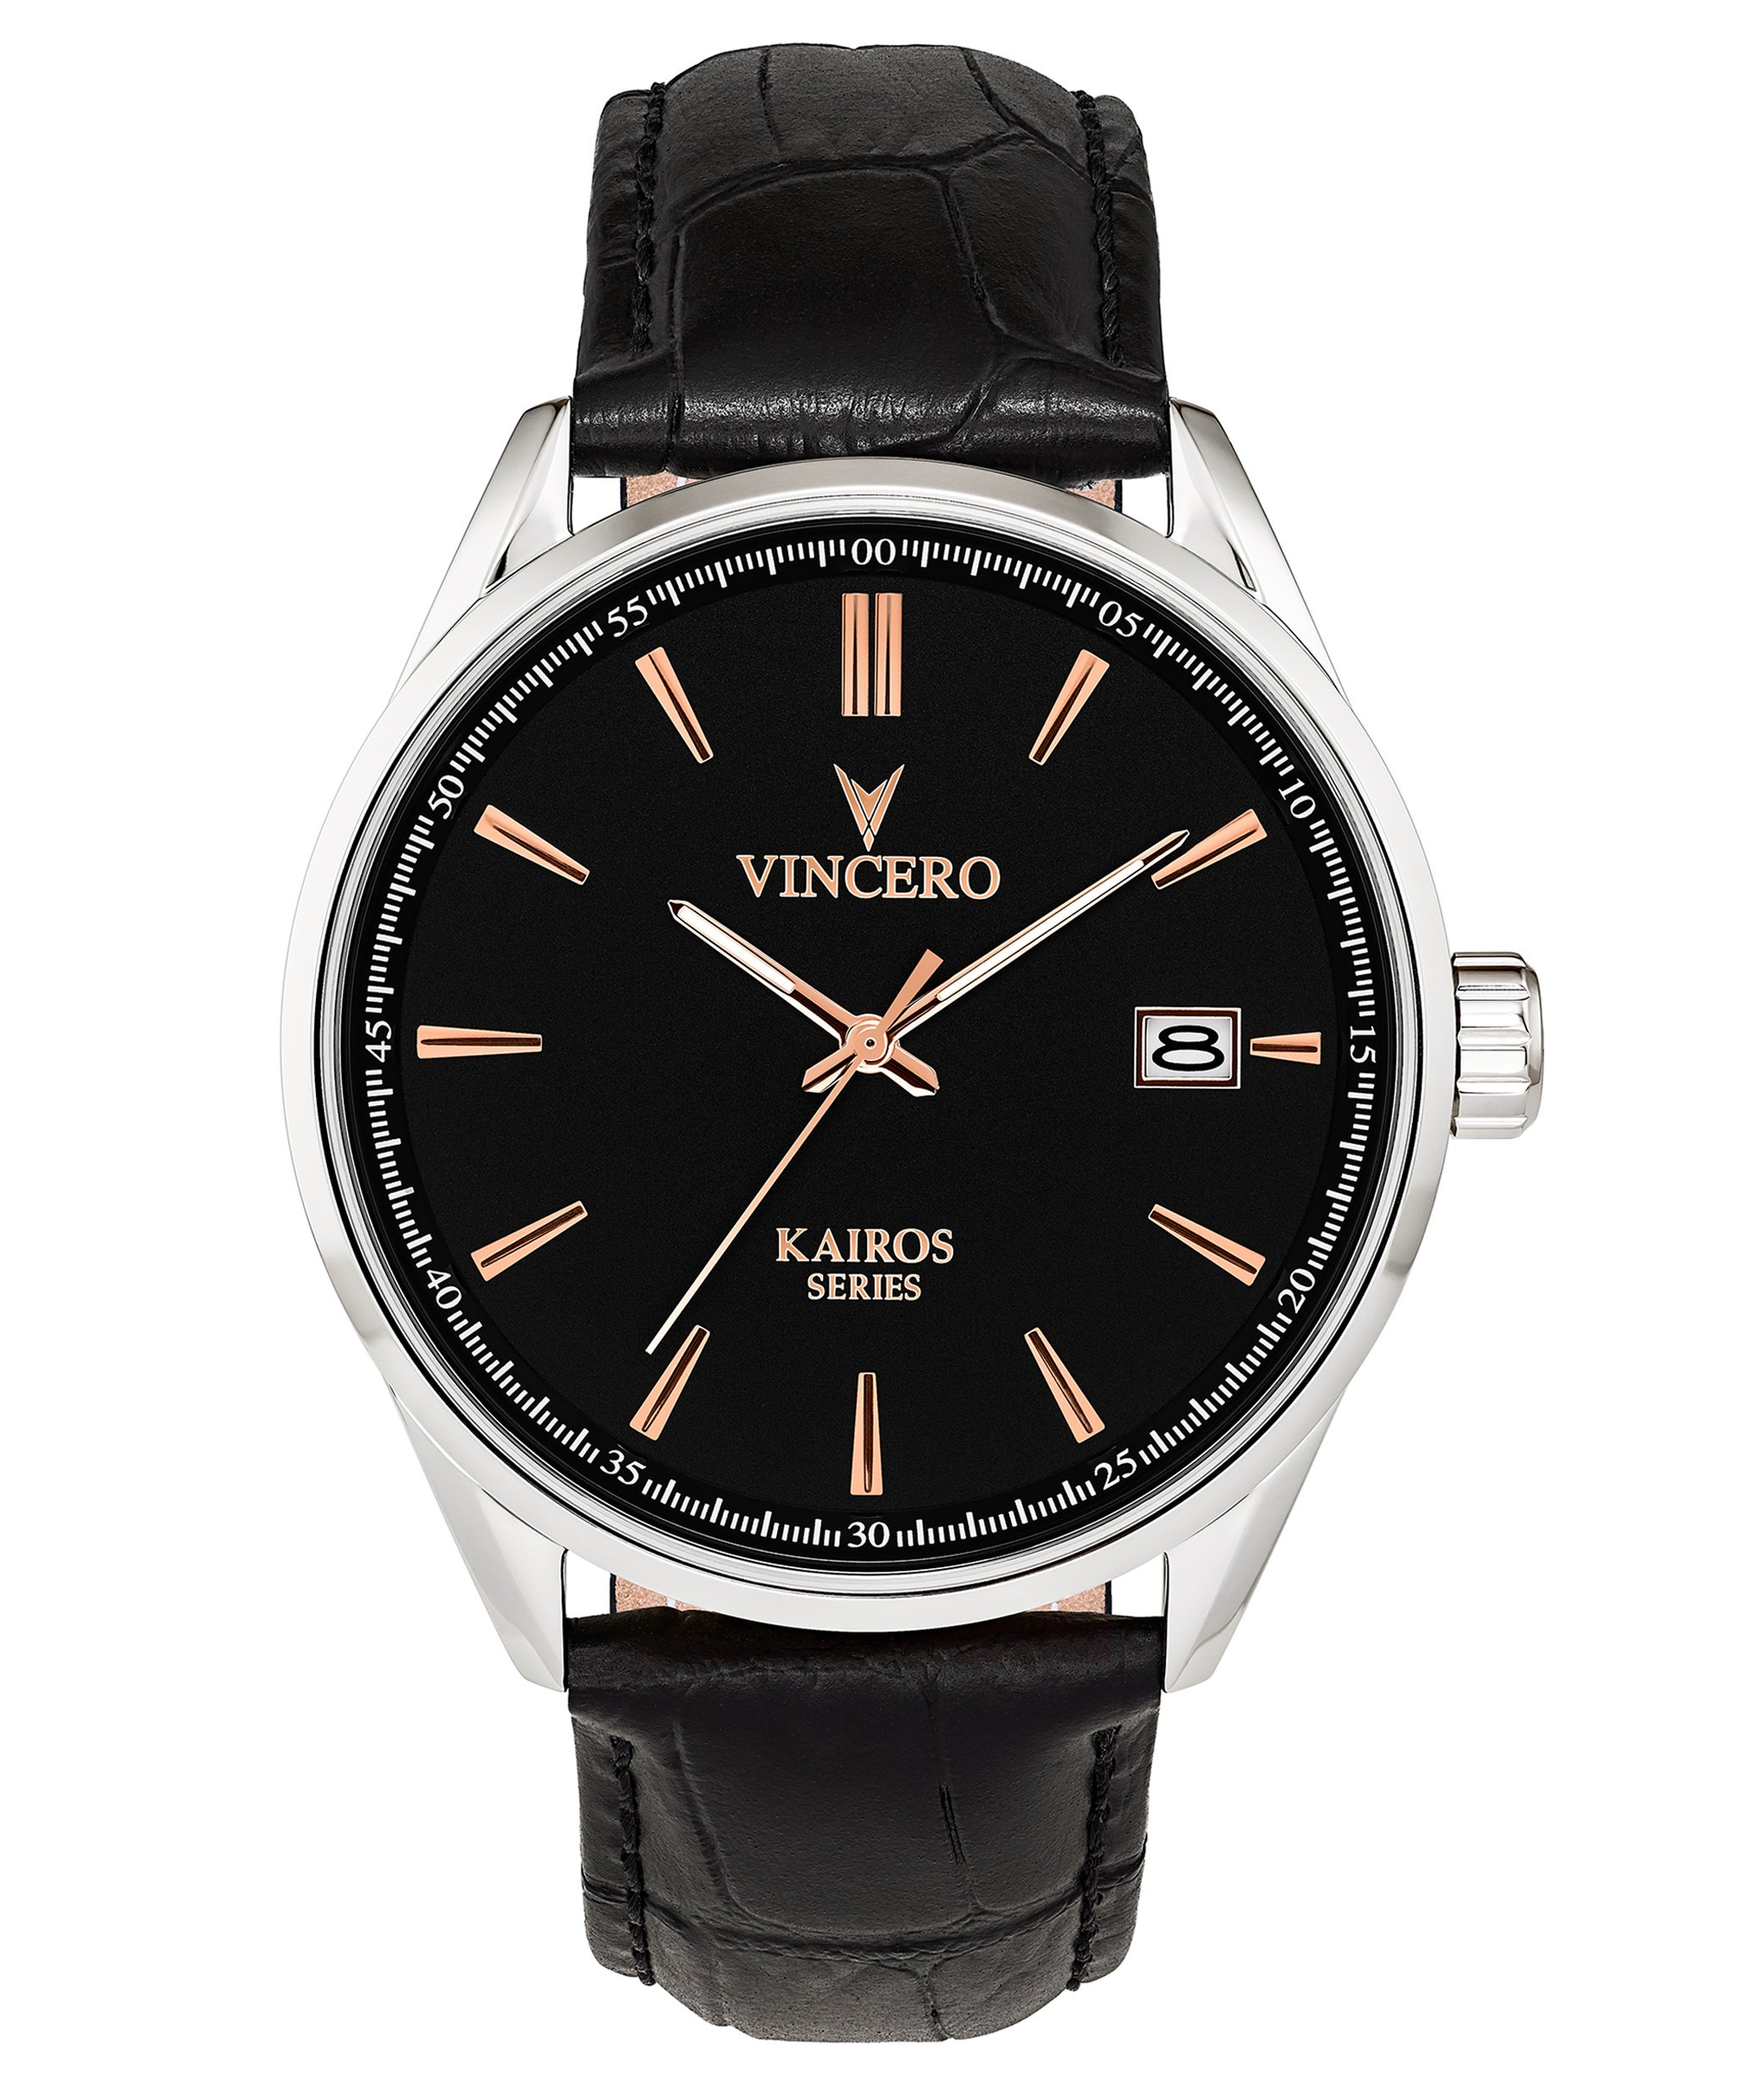 Vincero Men's Kairos Watch - Black + Rose Gold with Leather Band by Vincero